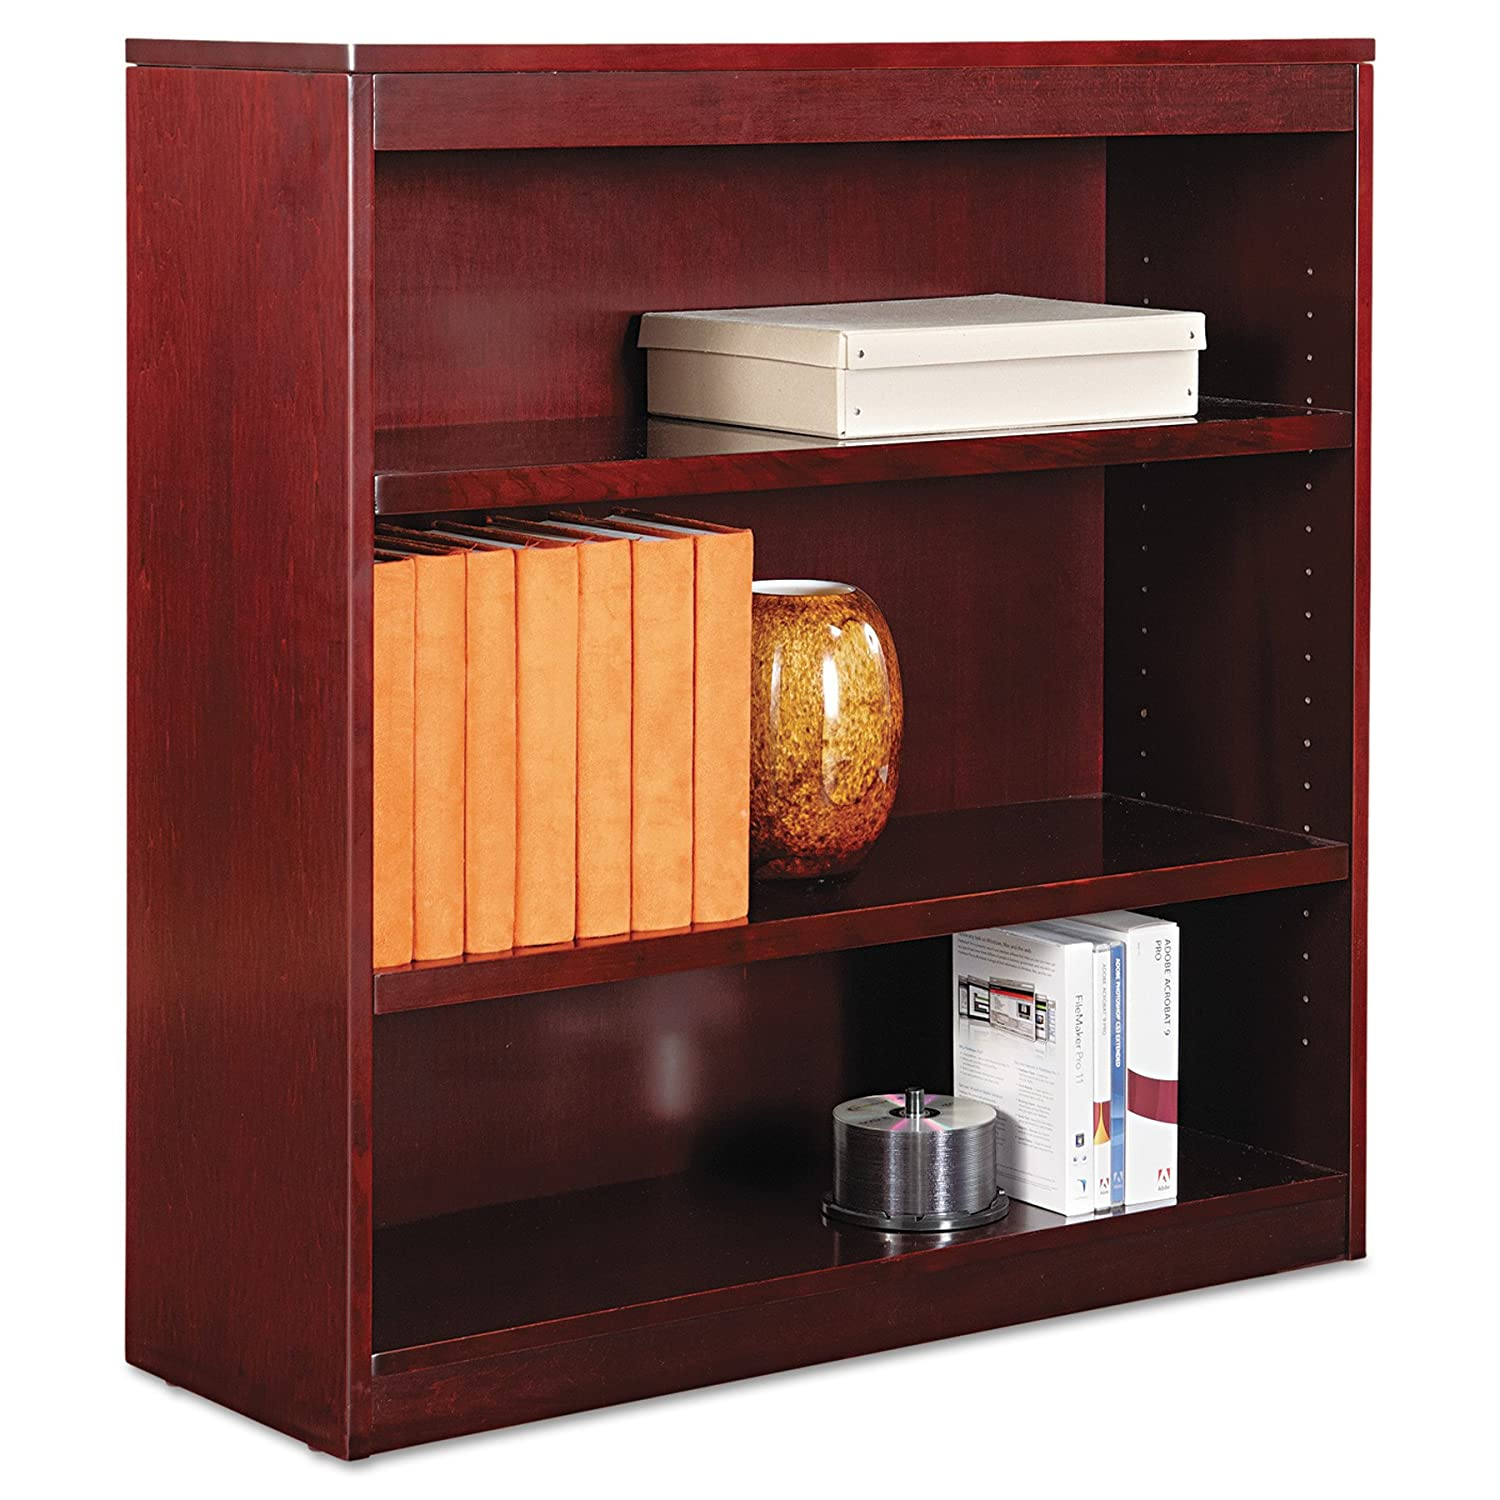 design hide bookcase in size chest impressive bookcases picture toy modern desk remodel costco furniture dollhouse lift on home of built astonishing amp full bunch ampamp storage box step about ideas